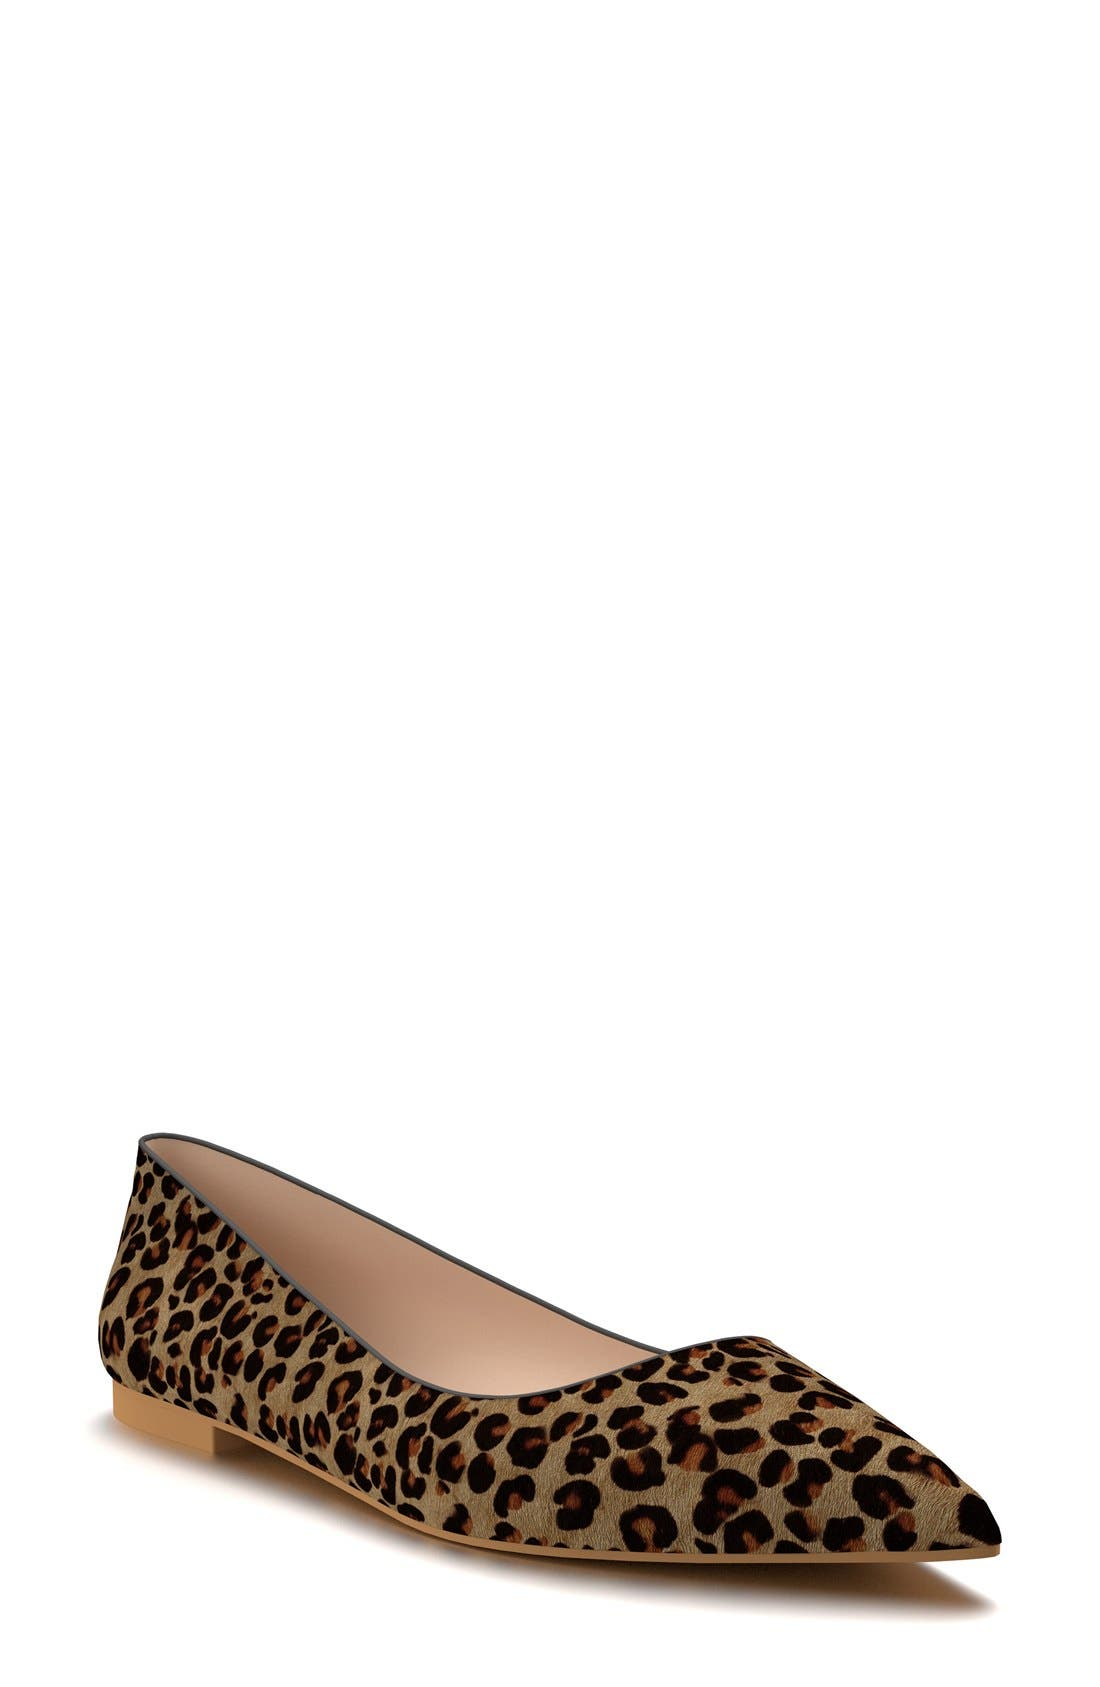 Alternate Image 1 Selected - Shoes of Prey Pointy Toe Flat (Women)